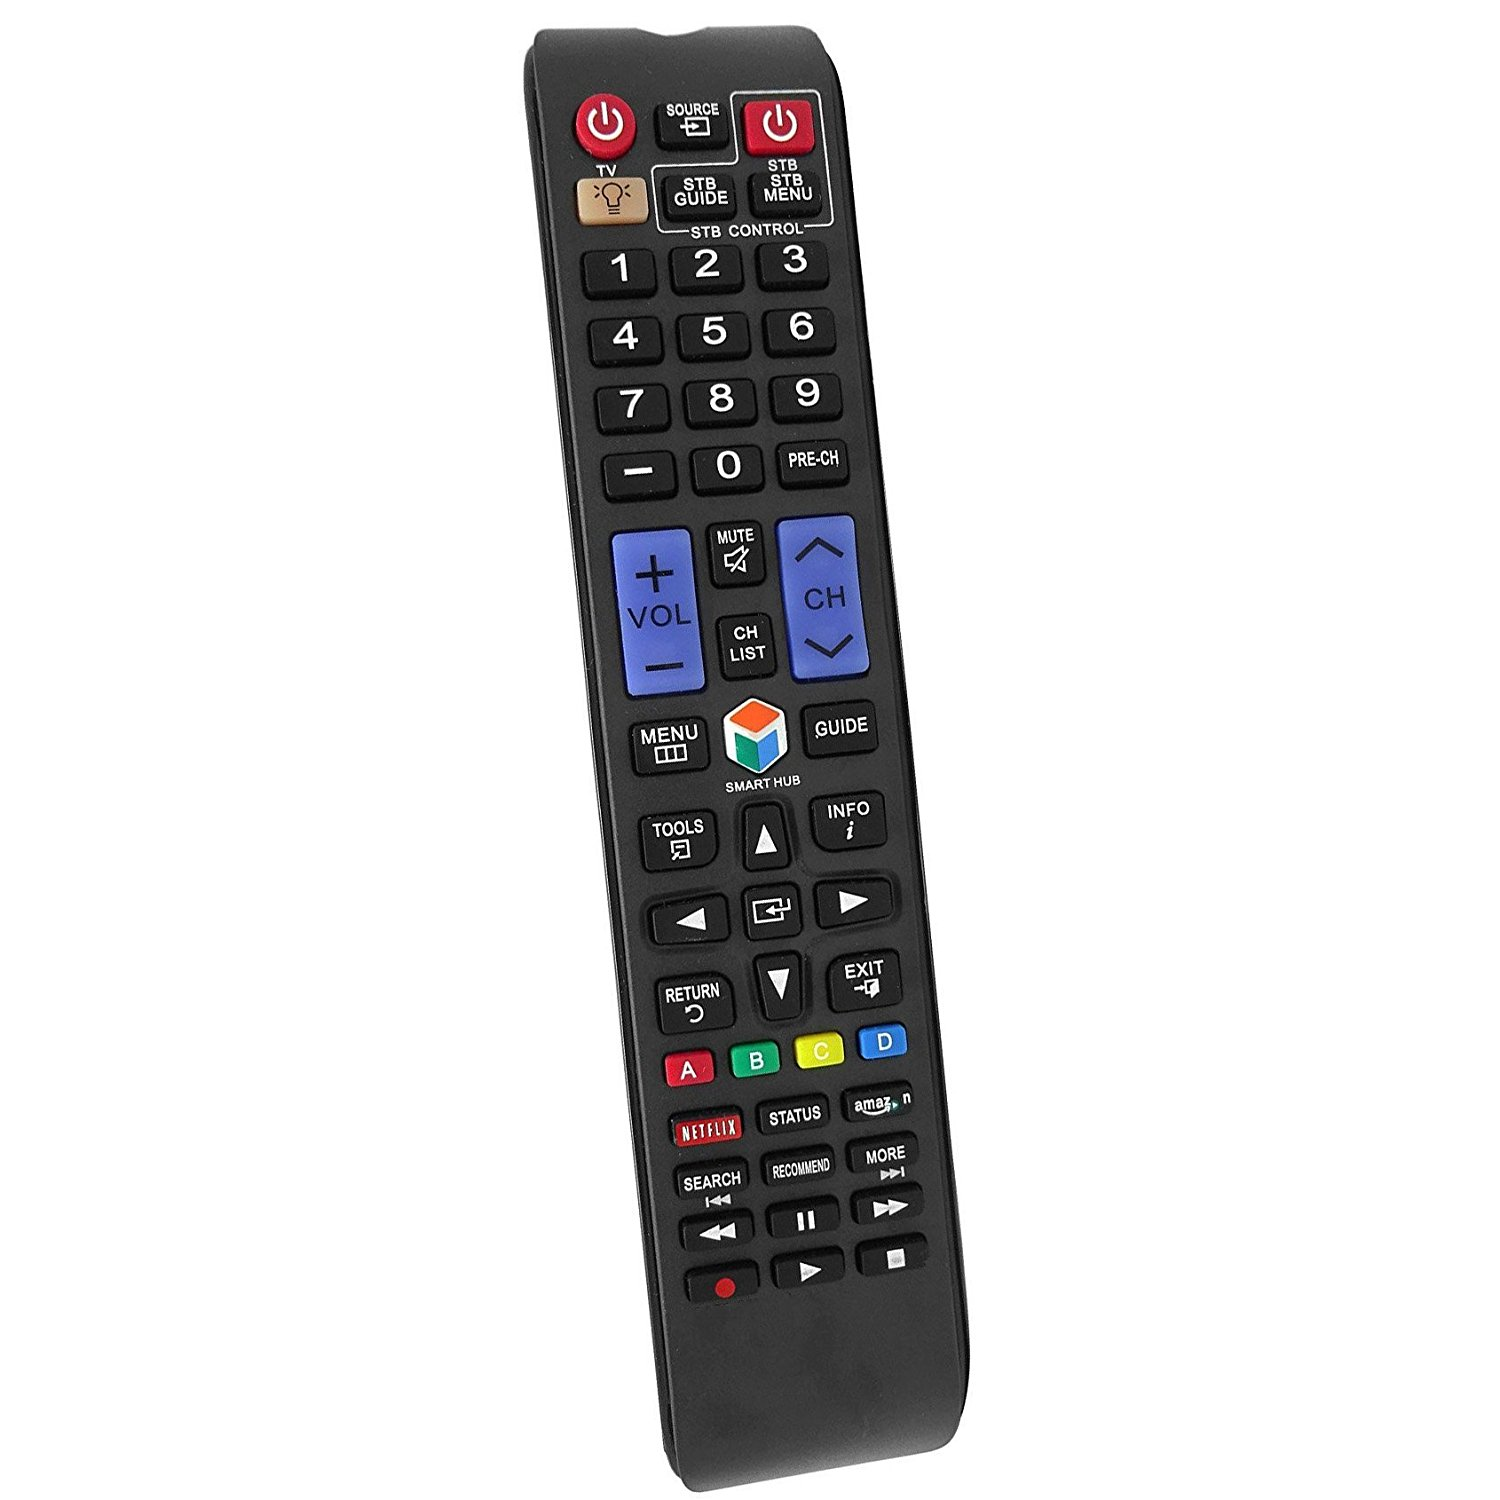 New Replace Remote BN59-01179B for Samsung 3D TV UN65H8000AF UN65HU8500F UN65HU8550F UN46ES7100 UN55ES6820FXZA UN55ES7150F UN55HU9000F UN60ES7150F UN55ES7003F UN55ES6900